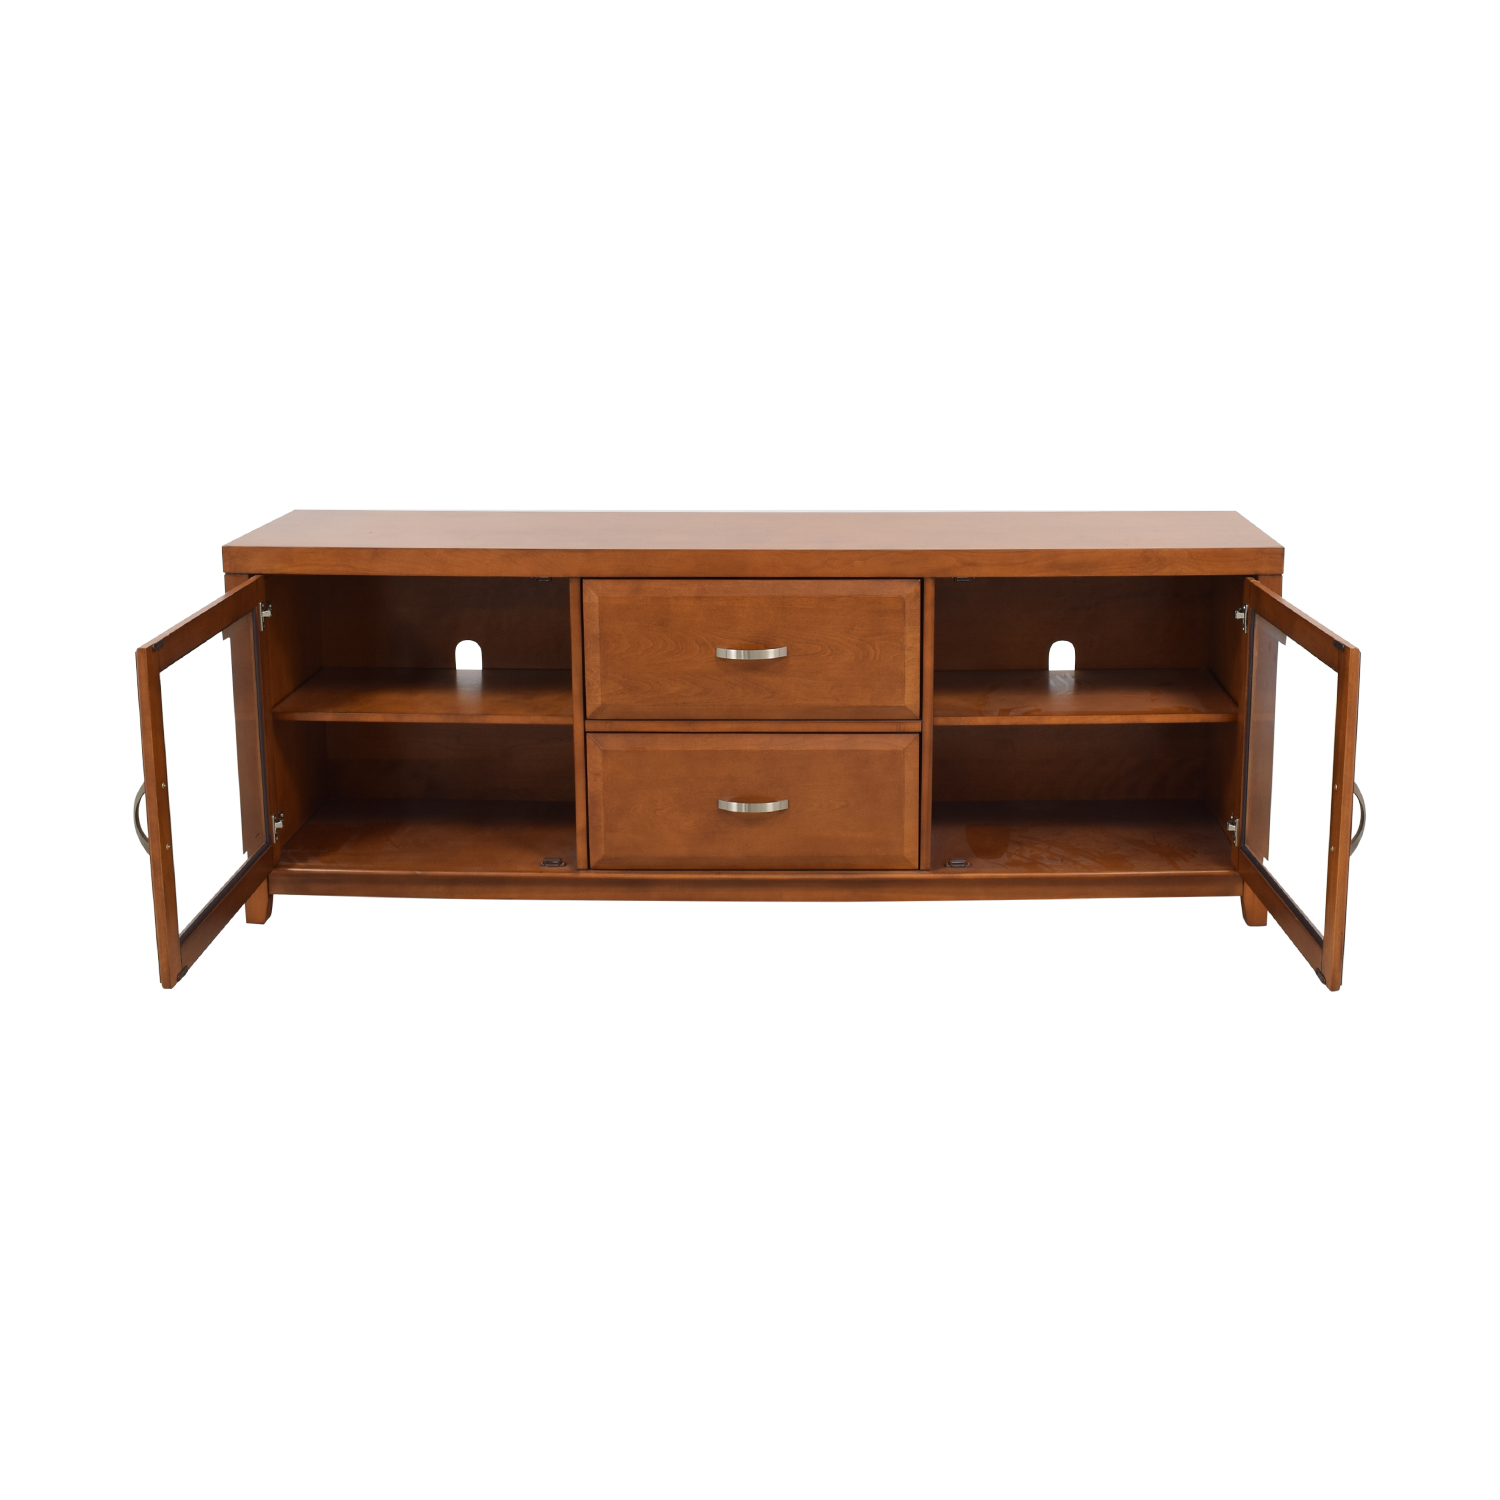 Raymour & Flanigan Raymour & Flanigan Wood and Glass Media Console second hand